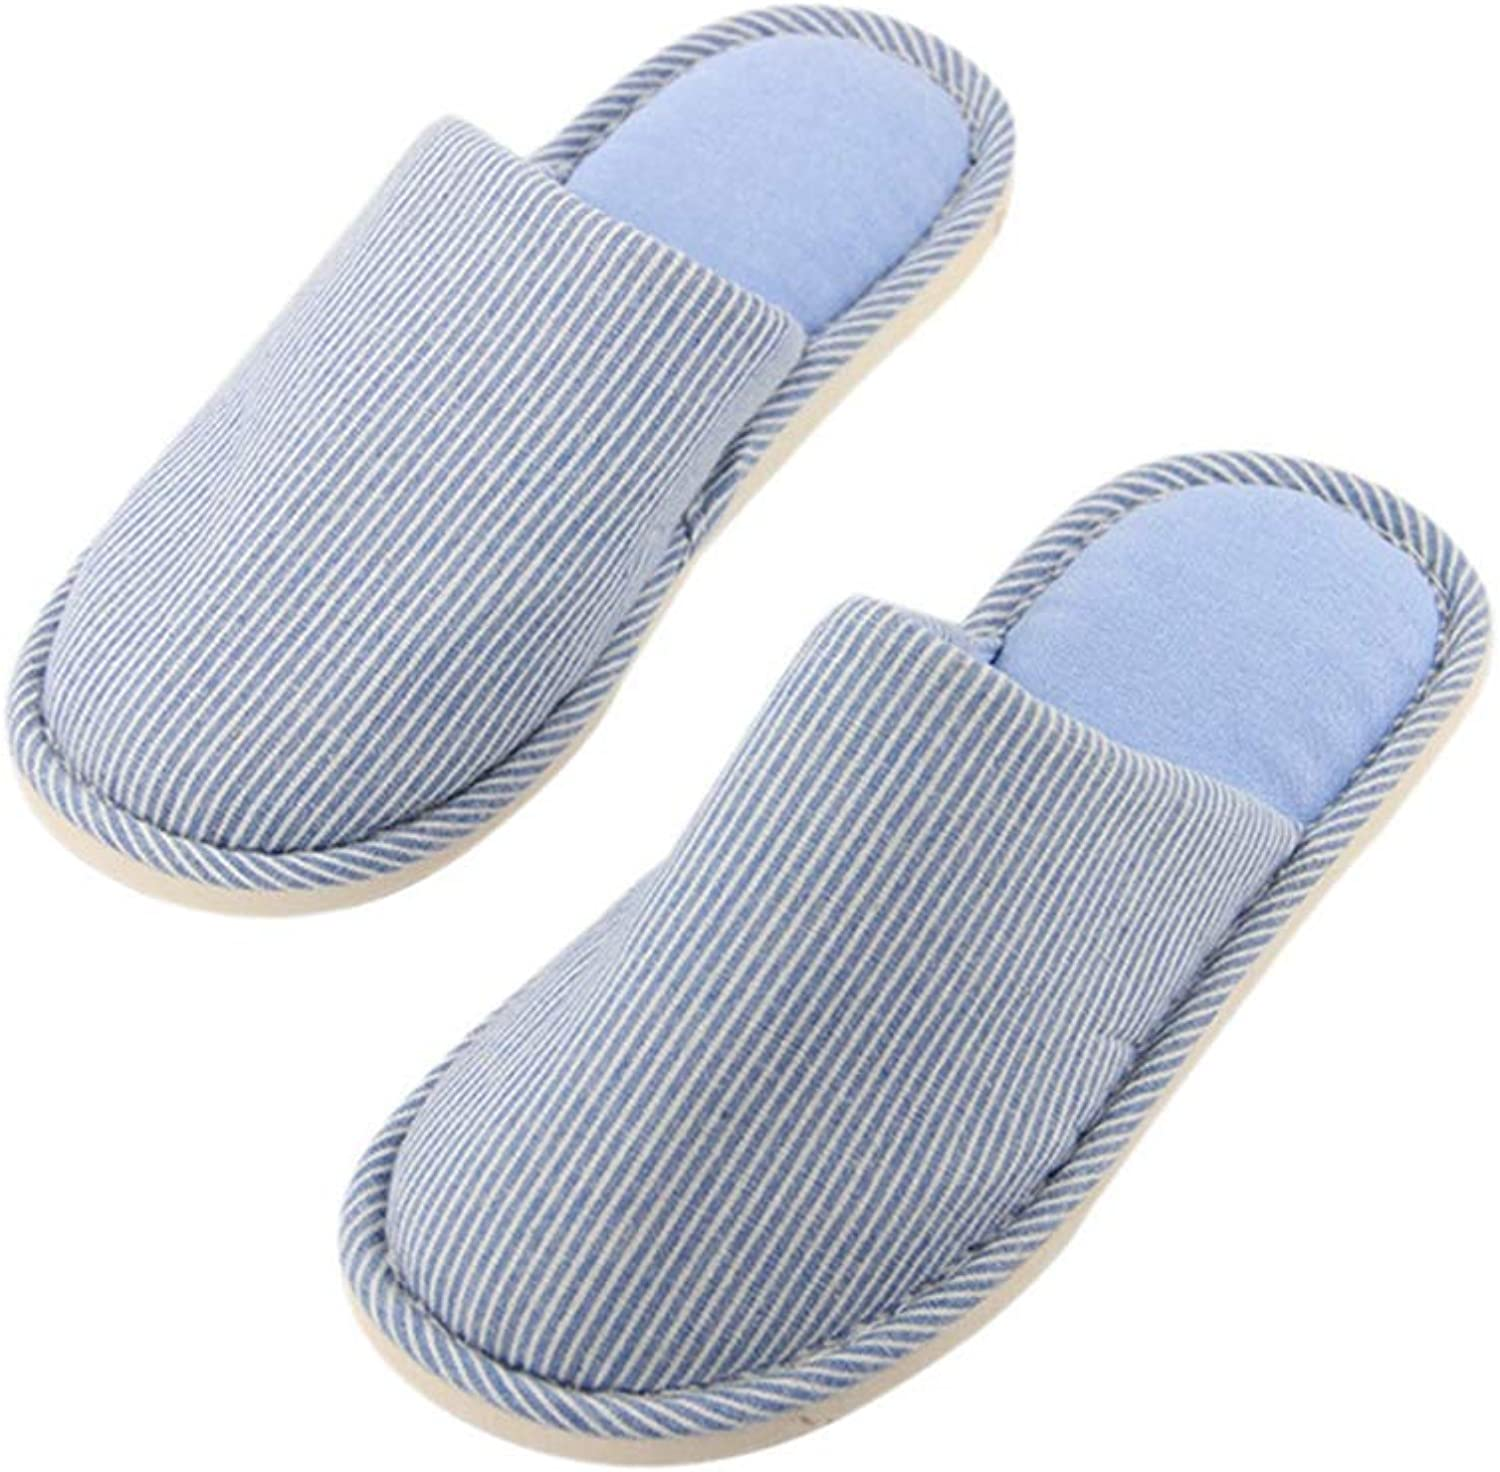 ASO-SLING Women's Home Slippers Warm Cotton Anti-Slip Striped Flip Flops Indoor Fur Lined House shoes